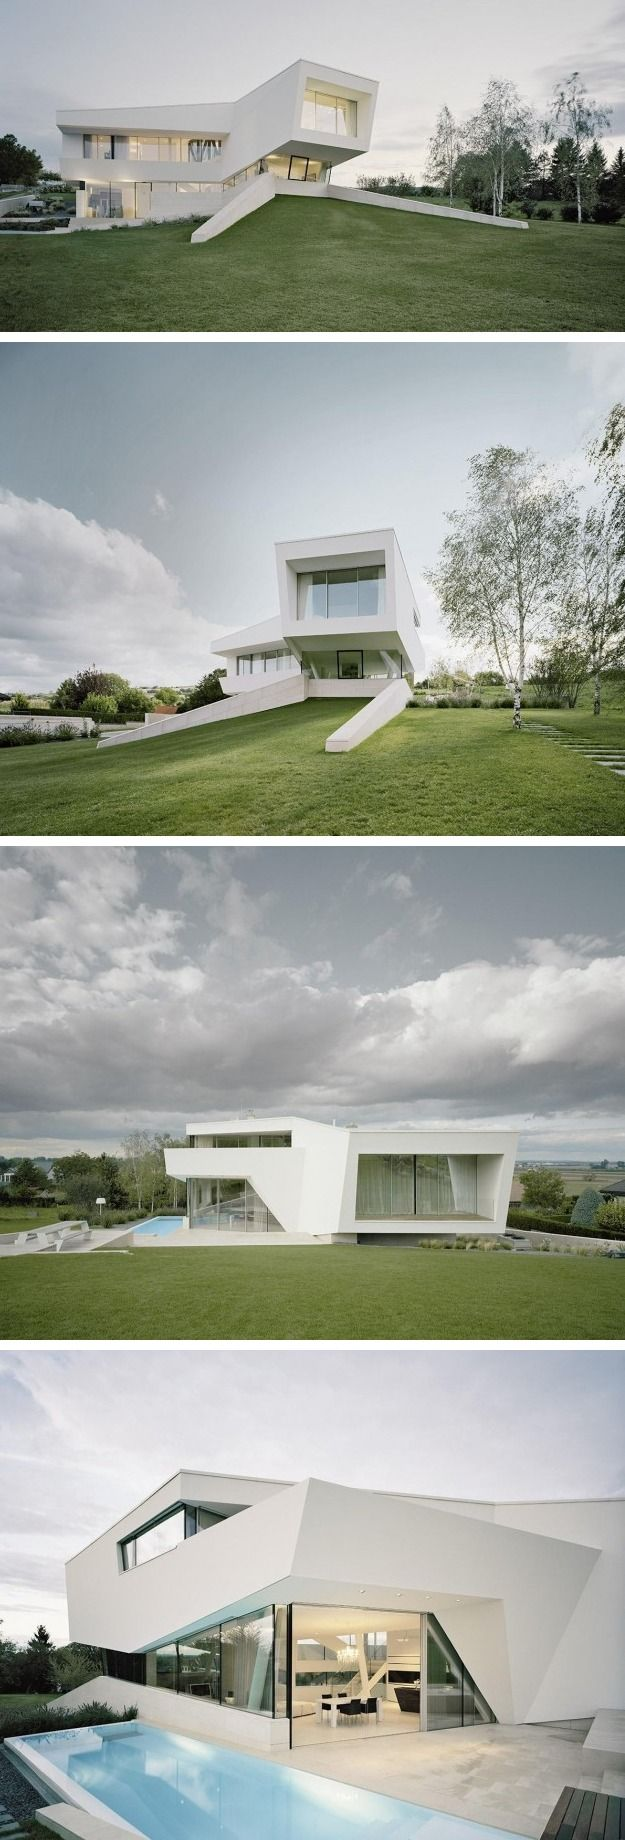 150 m2 dubleks 2 katl villa ev villa projeleri - Project A01 Architects Designed The Villa Freundorf For A Family Near Vienna Austria